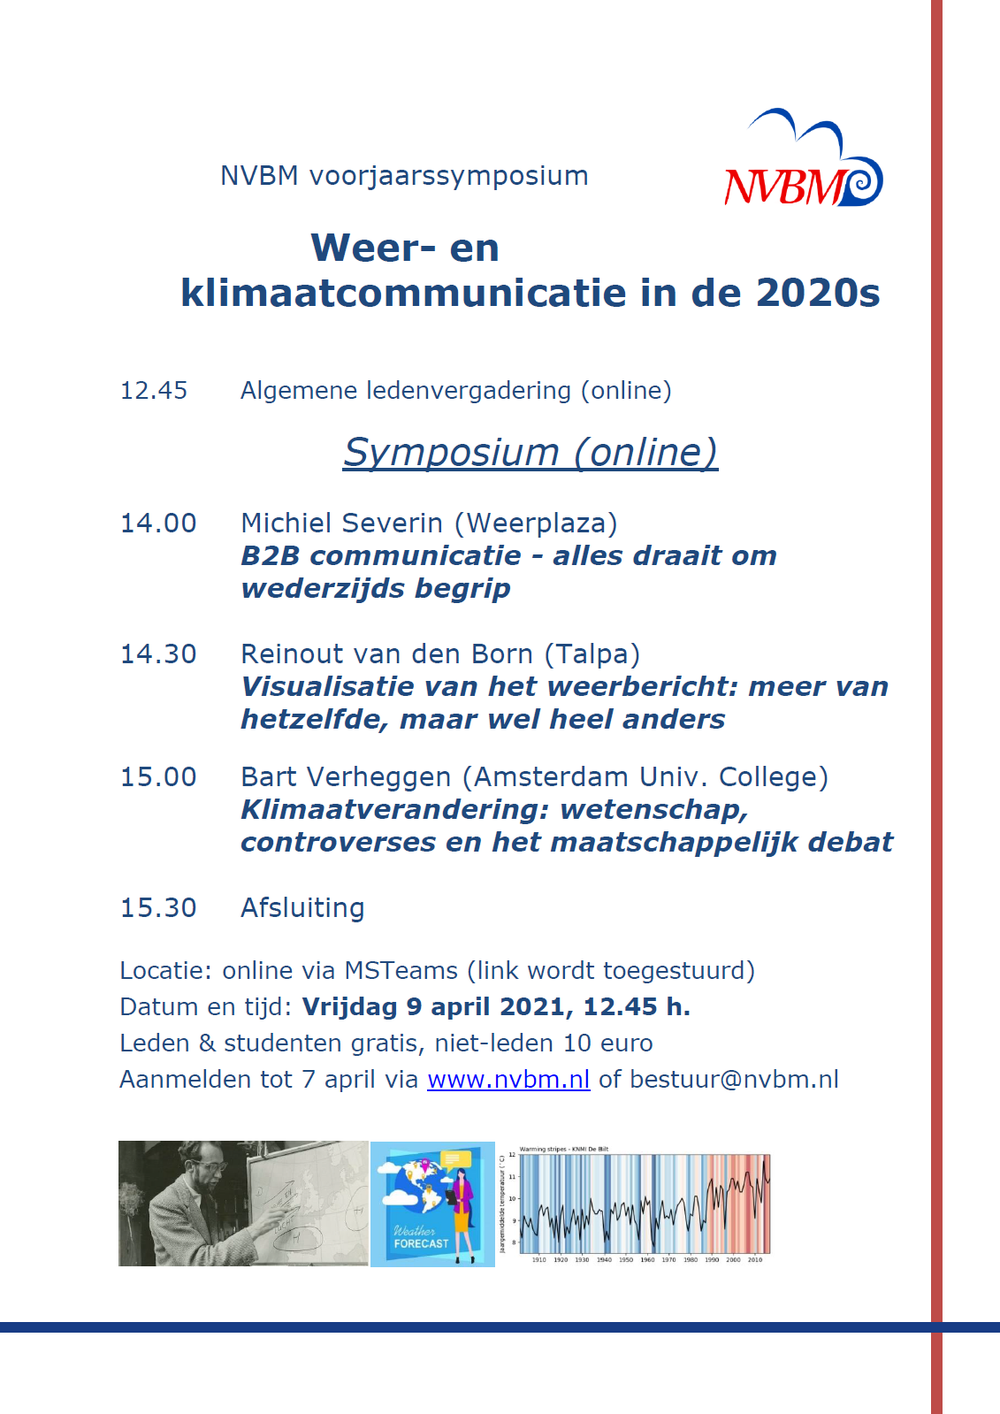 Voorjaarssymposium 9 april 2021: Weer- en klimaatcommunicatie in de 2020s